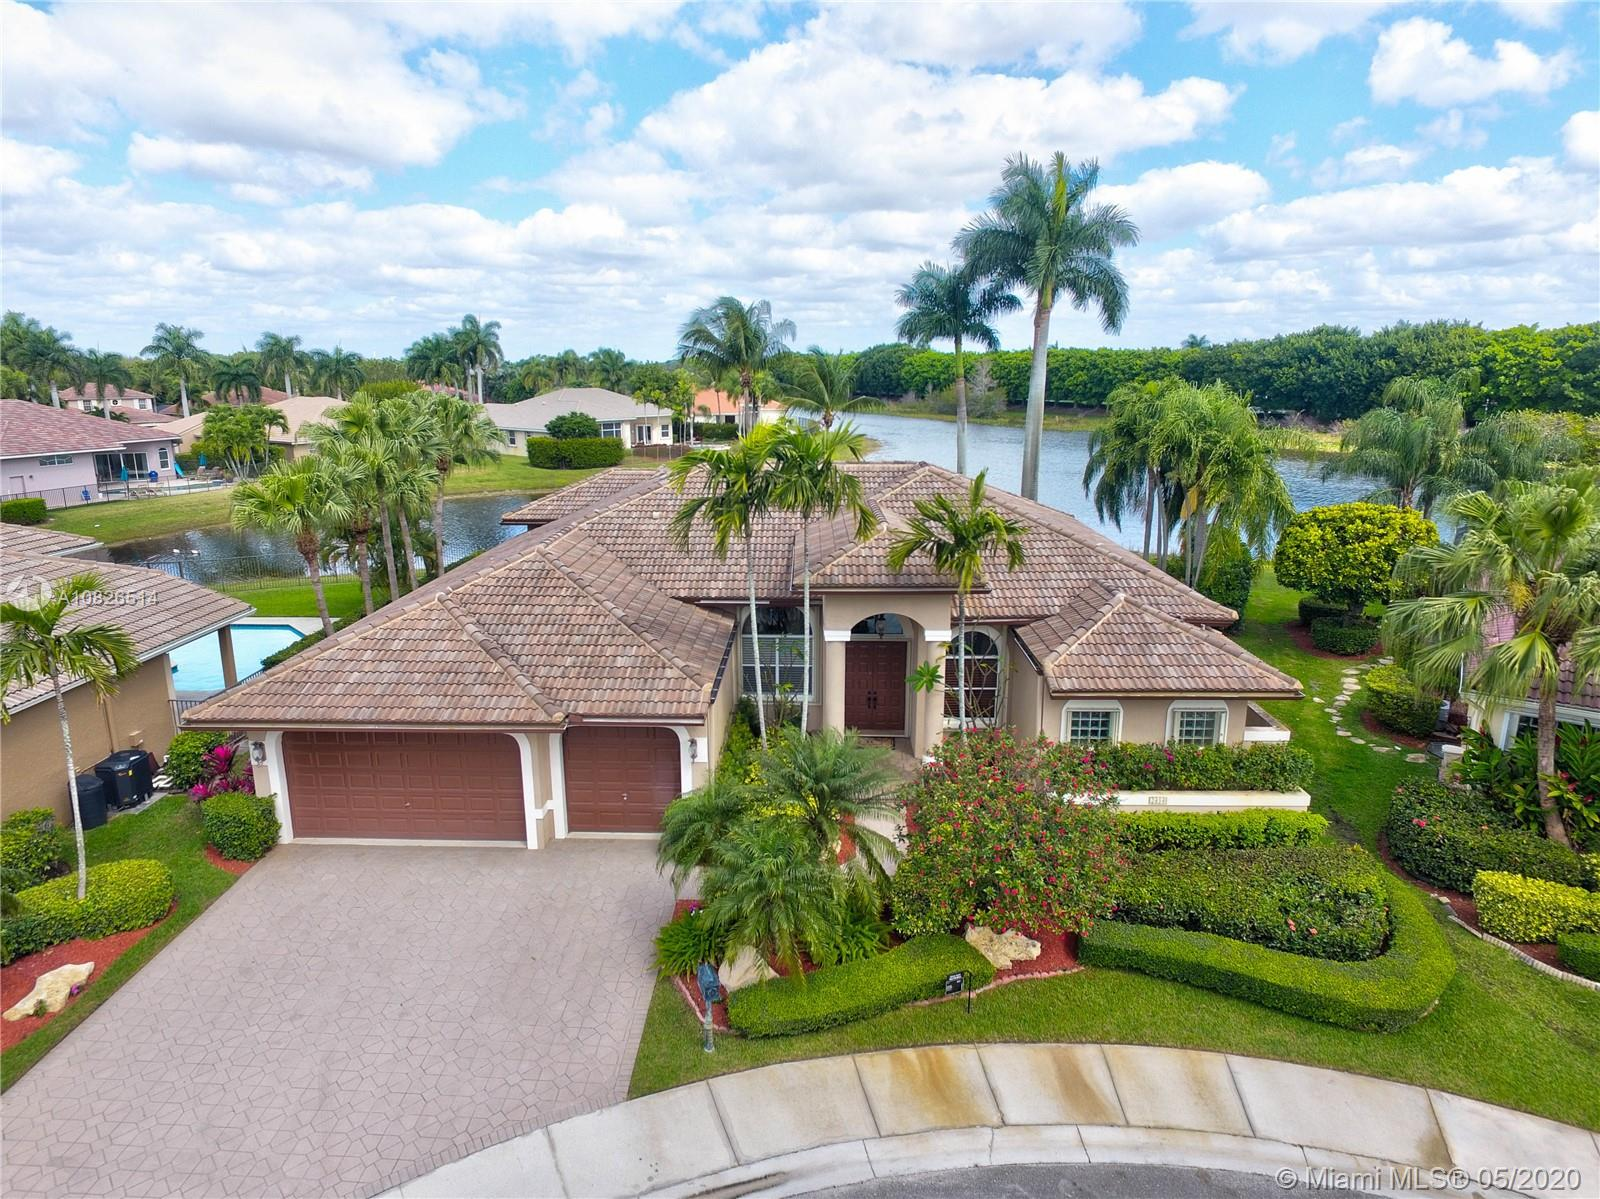 Perfect for you and your family,  A true 5BR, 3.5BA, 3-car garage on more than ? acre w/prof. landscaping. Set on a cul-de-sac, waterfront living with a large screened patio w/ heated saltwater pool and beautiful long lake views in prestigious Weston Hills Country Club.Newer roof (2014). Newly renovated modern kitchen, SS appliances, and breakfast nook. Updated bath, extensive crown molding and ceramic tile floors throughout.Spacious Master Bedroom w/tray ceilings. MB w/dual vanities, soaking tub, and oversized walk-in shower. Separate office/library. Jump on I75 for quick Miami commute, Weston Town Center, Cleveland Clinic. FLL Airport & a Grade A school system. A Golf membership is optional.